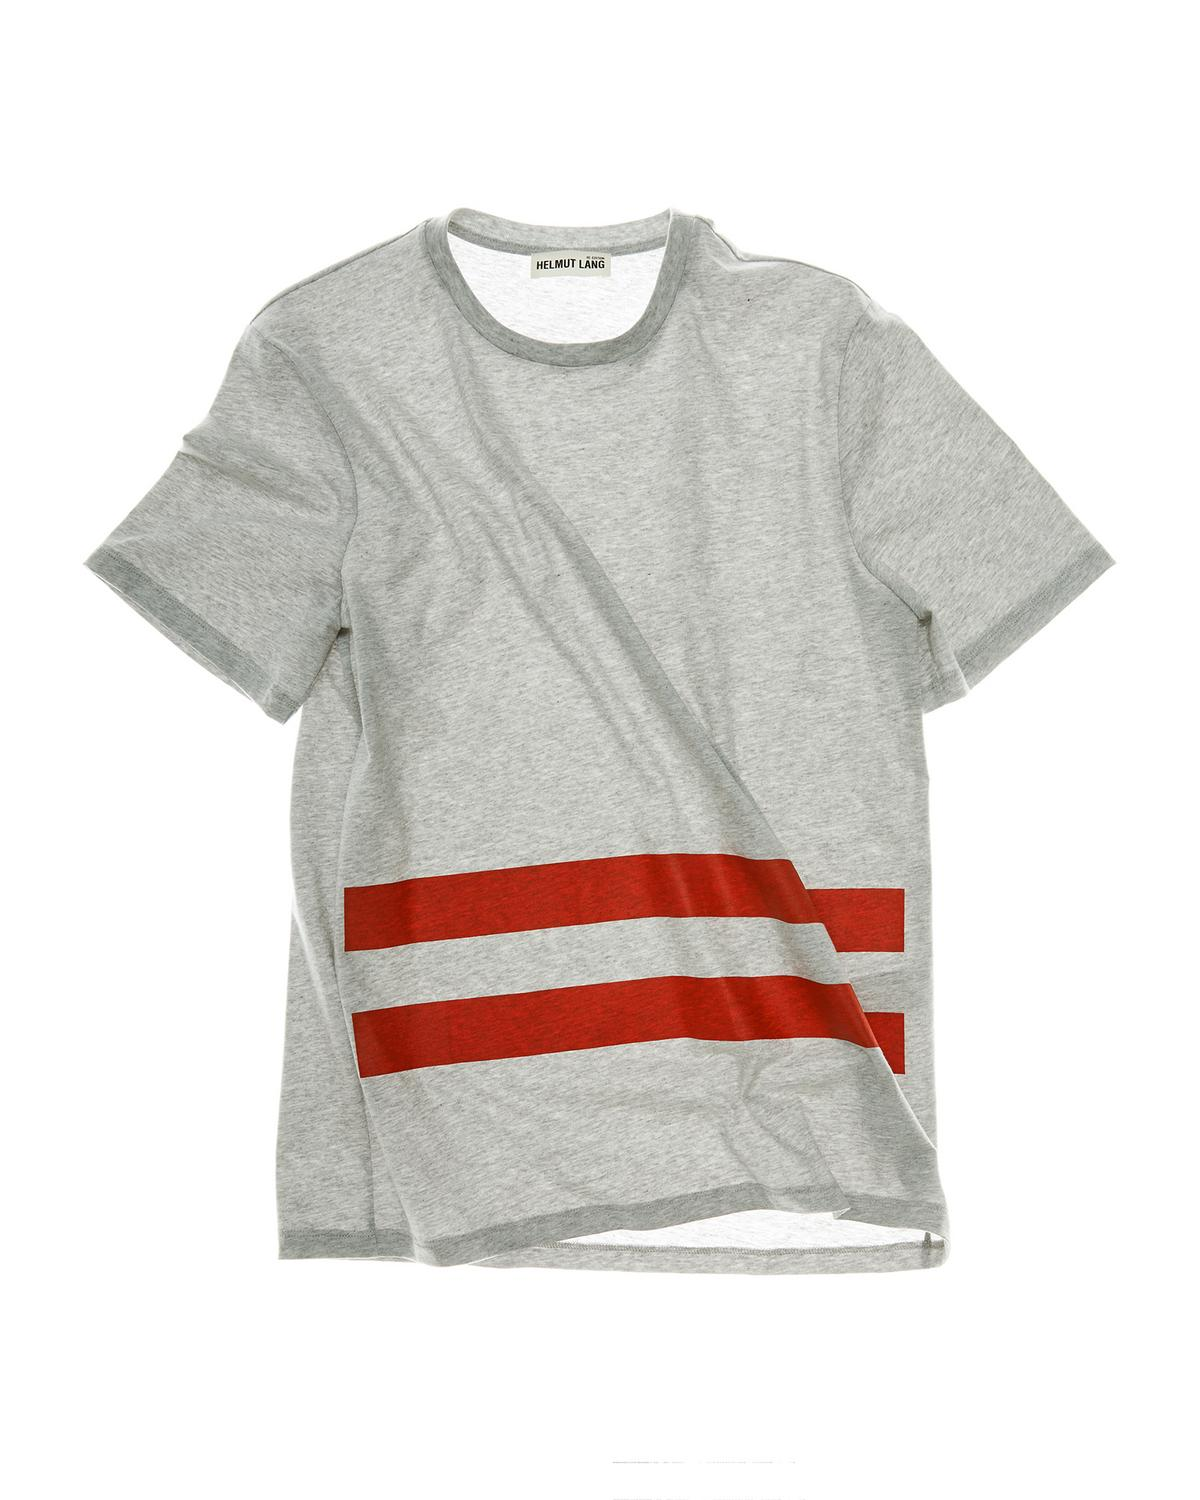 TSHIRT WITH STRIPES